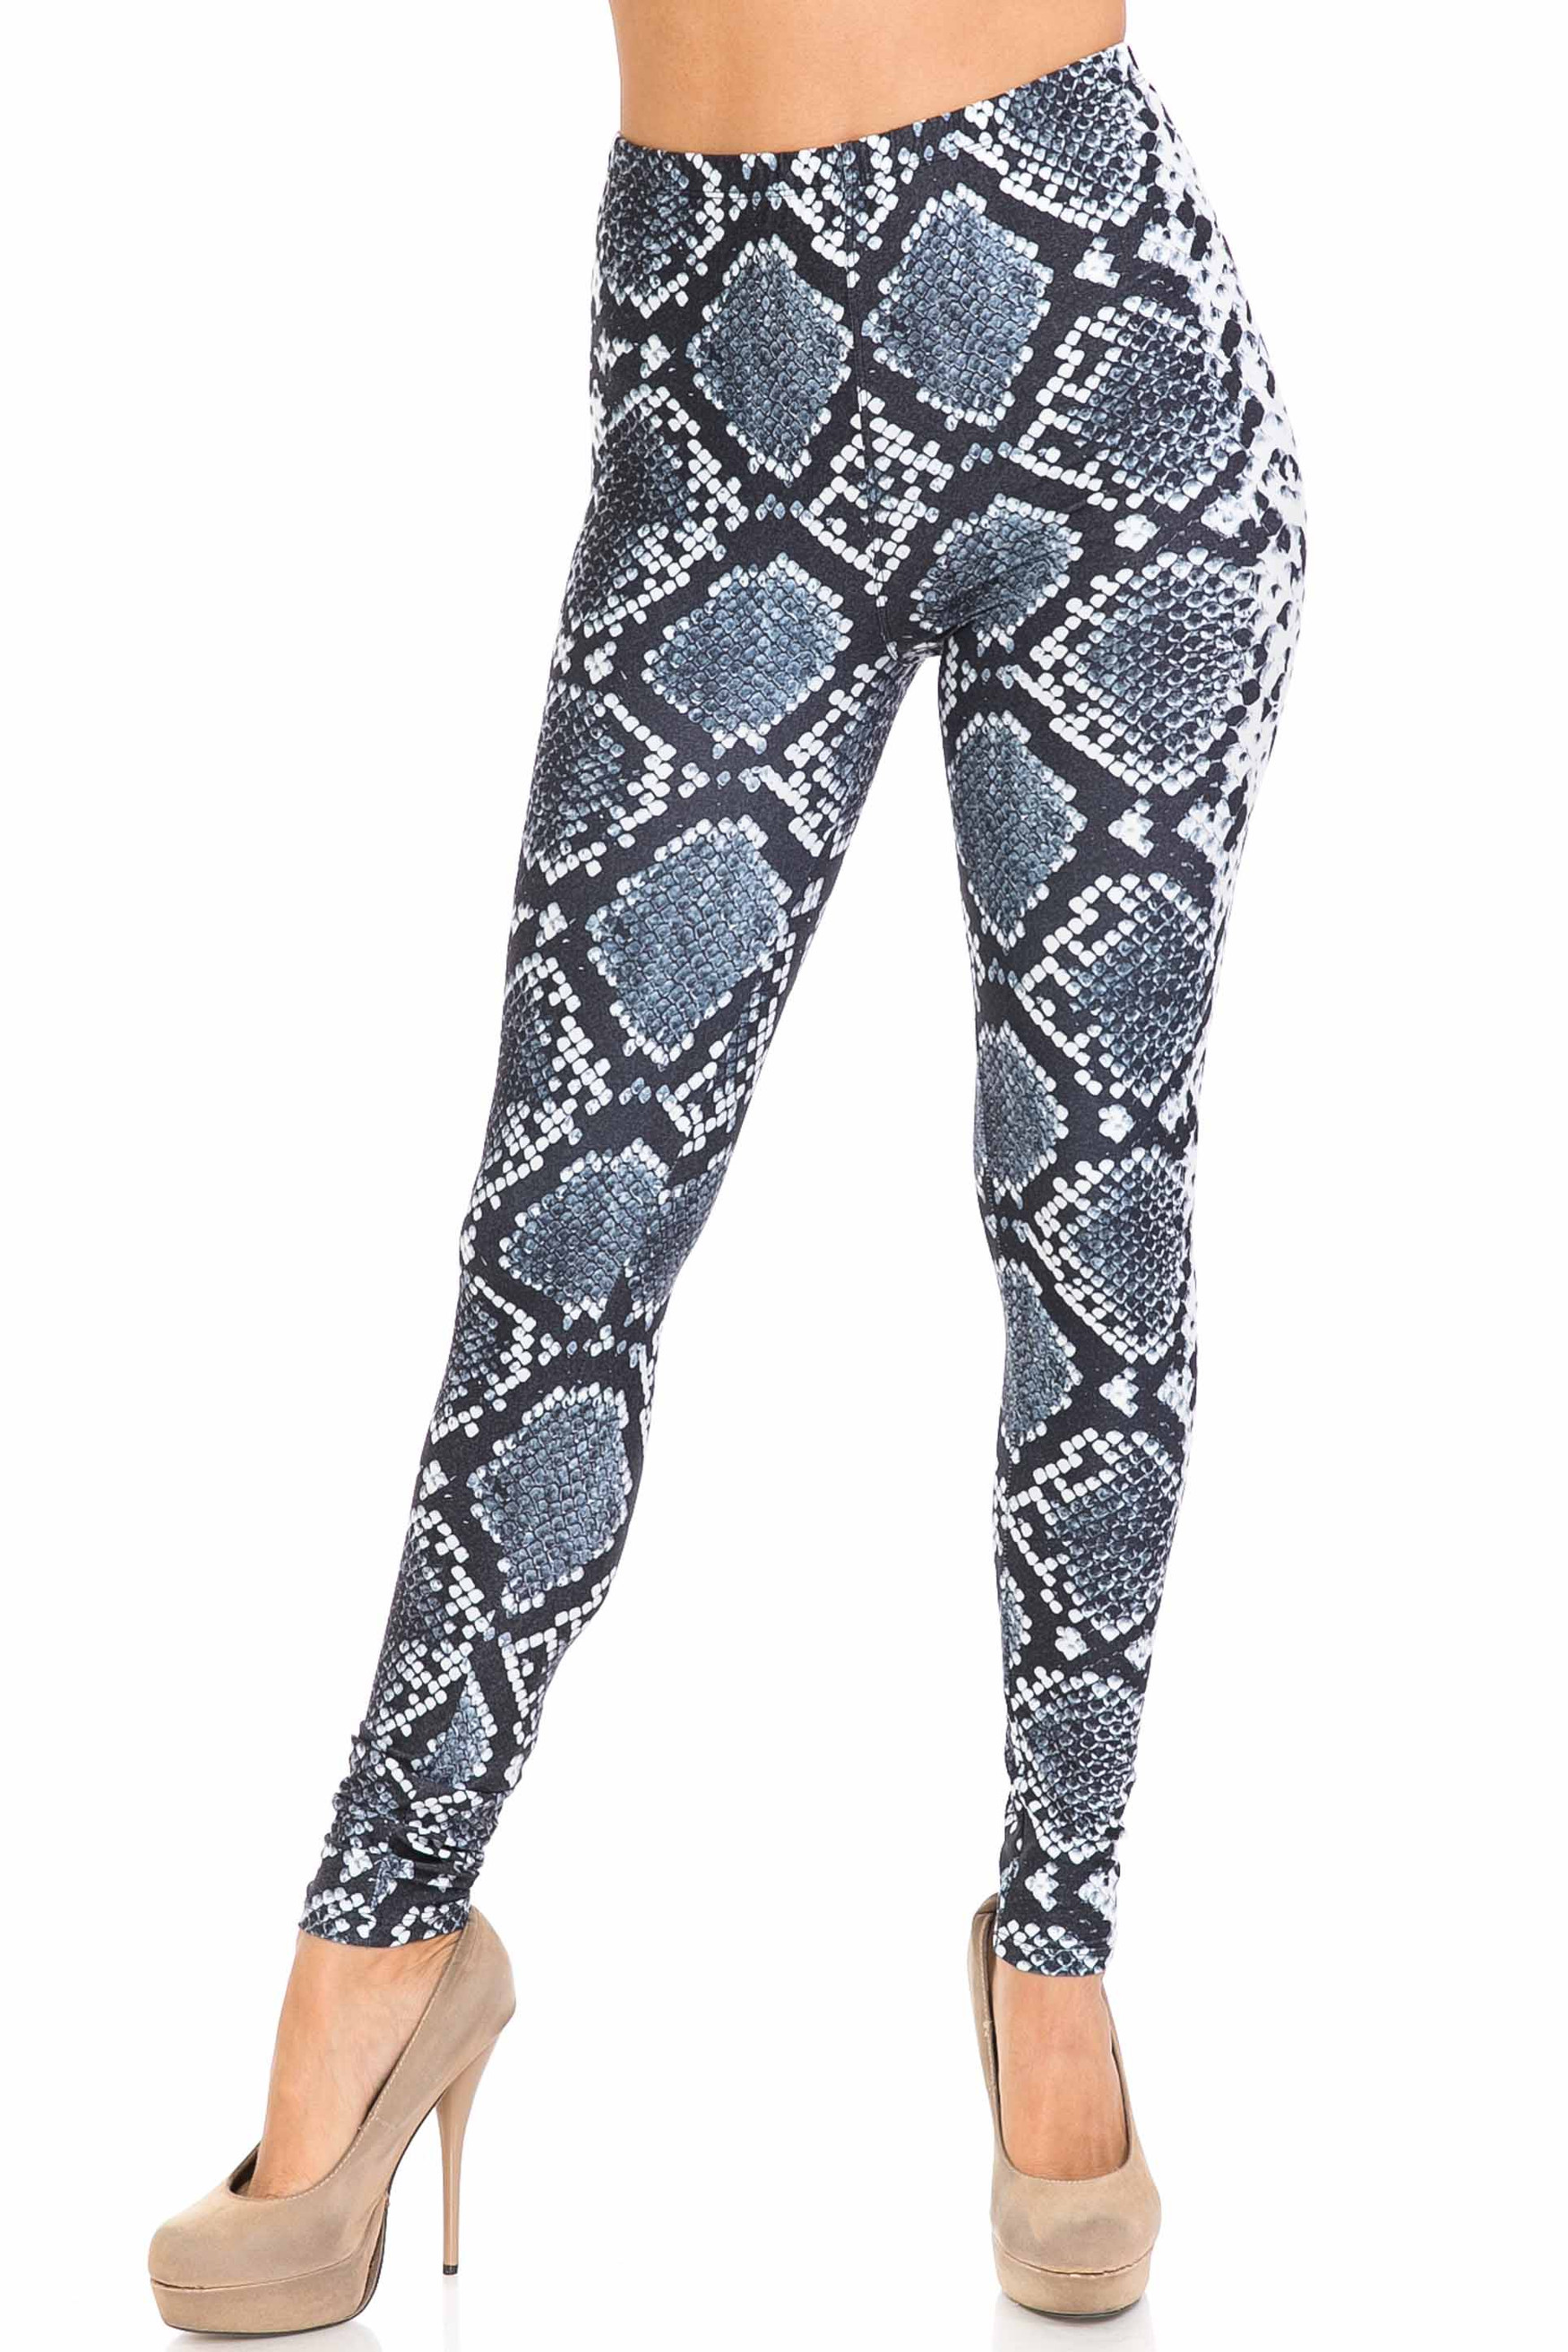 Front of Creamy Soft Steel Blue Boa Extra Plus Size Leggings - 3X-5X - USA Fashion™ with a fitted skinny leg and full length hem.